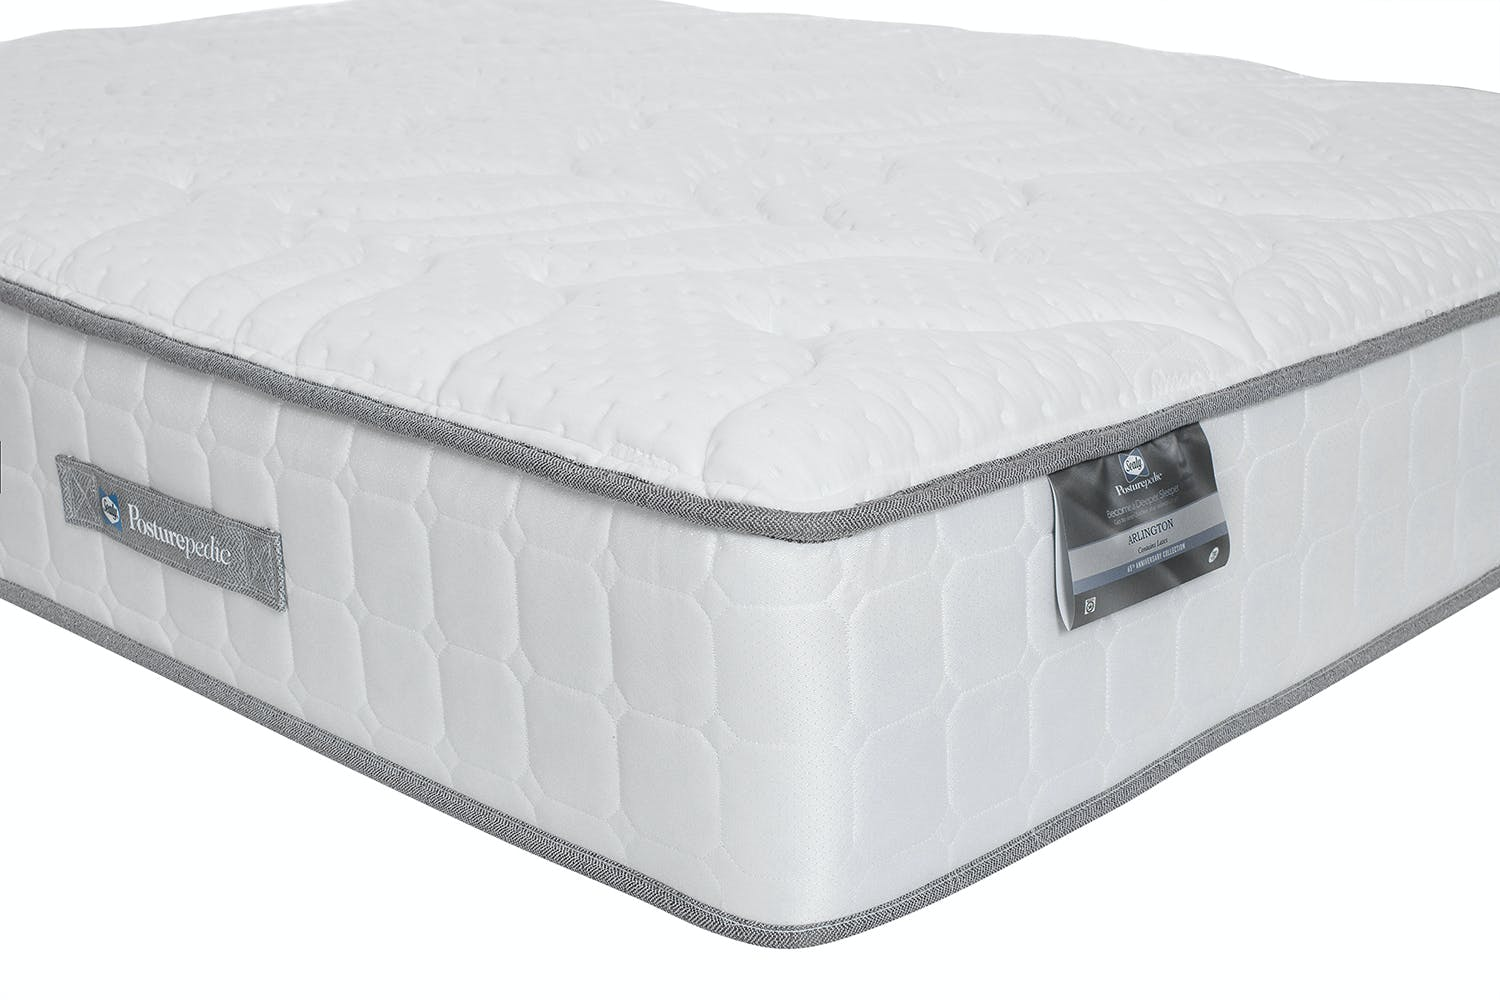 Arlington king mattress 5ft ireland Mattress king